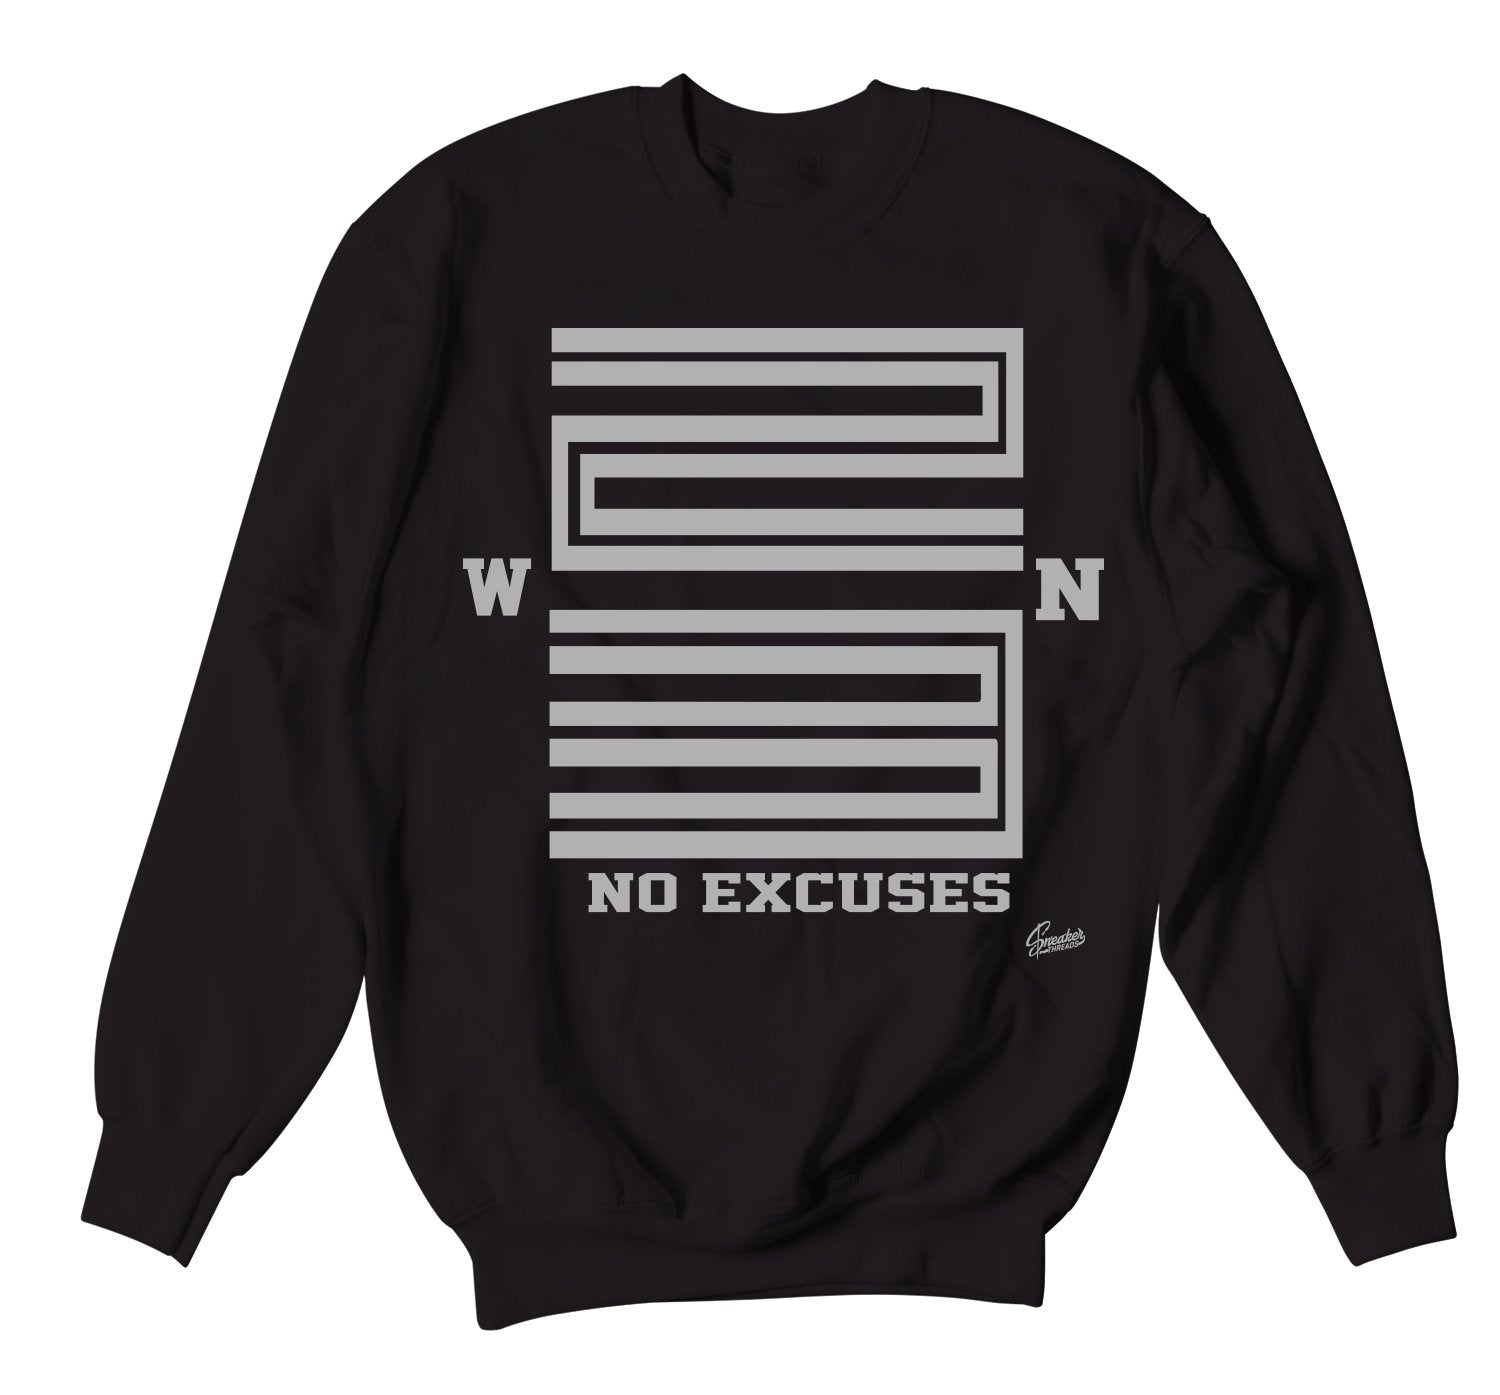 Crewneck sweaters created to match the Jordan 11 metallic silver sneaker collection